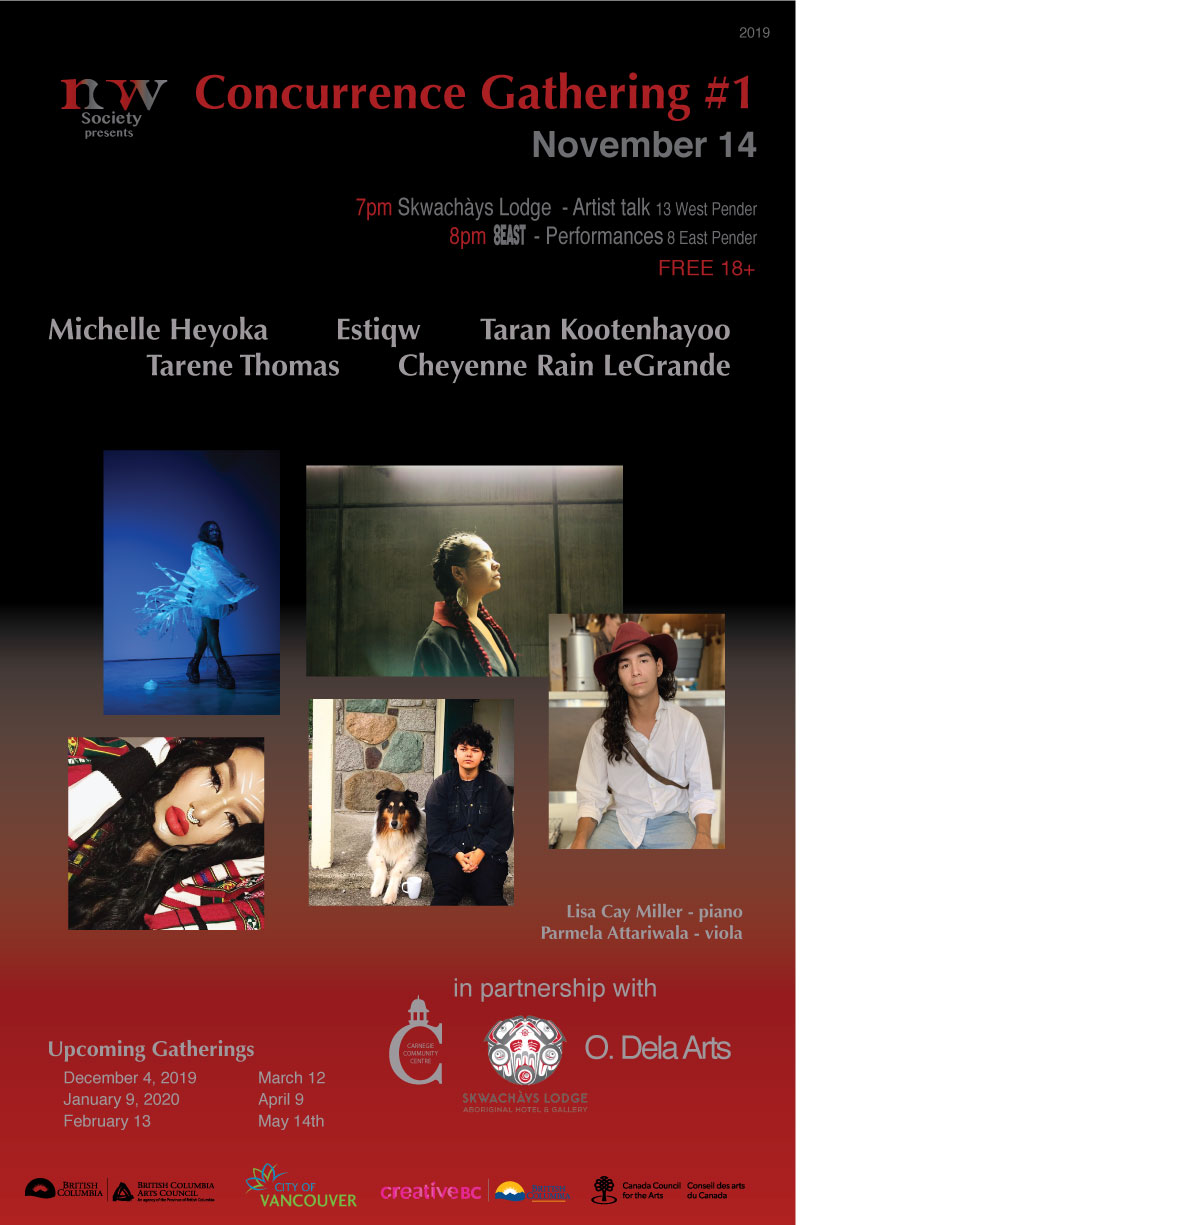 concurrence-gatherings-1.jpg